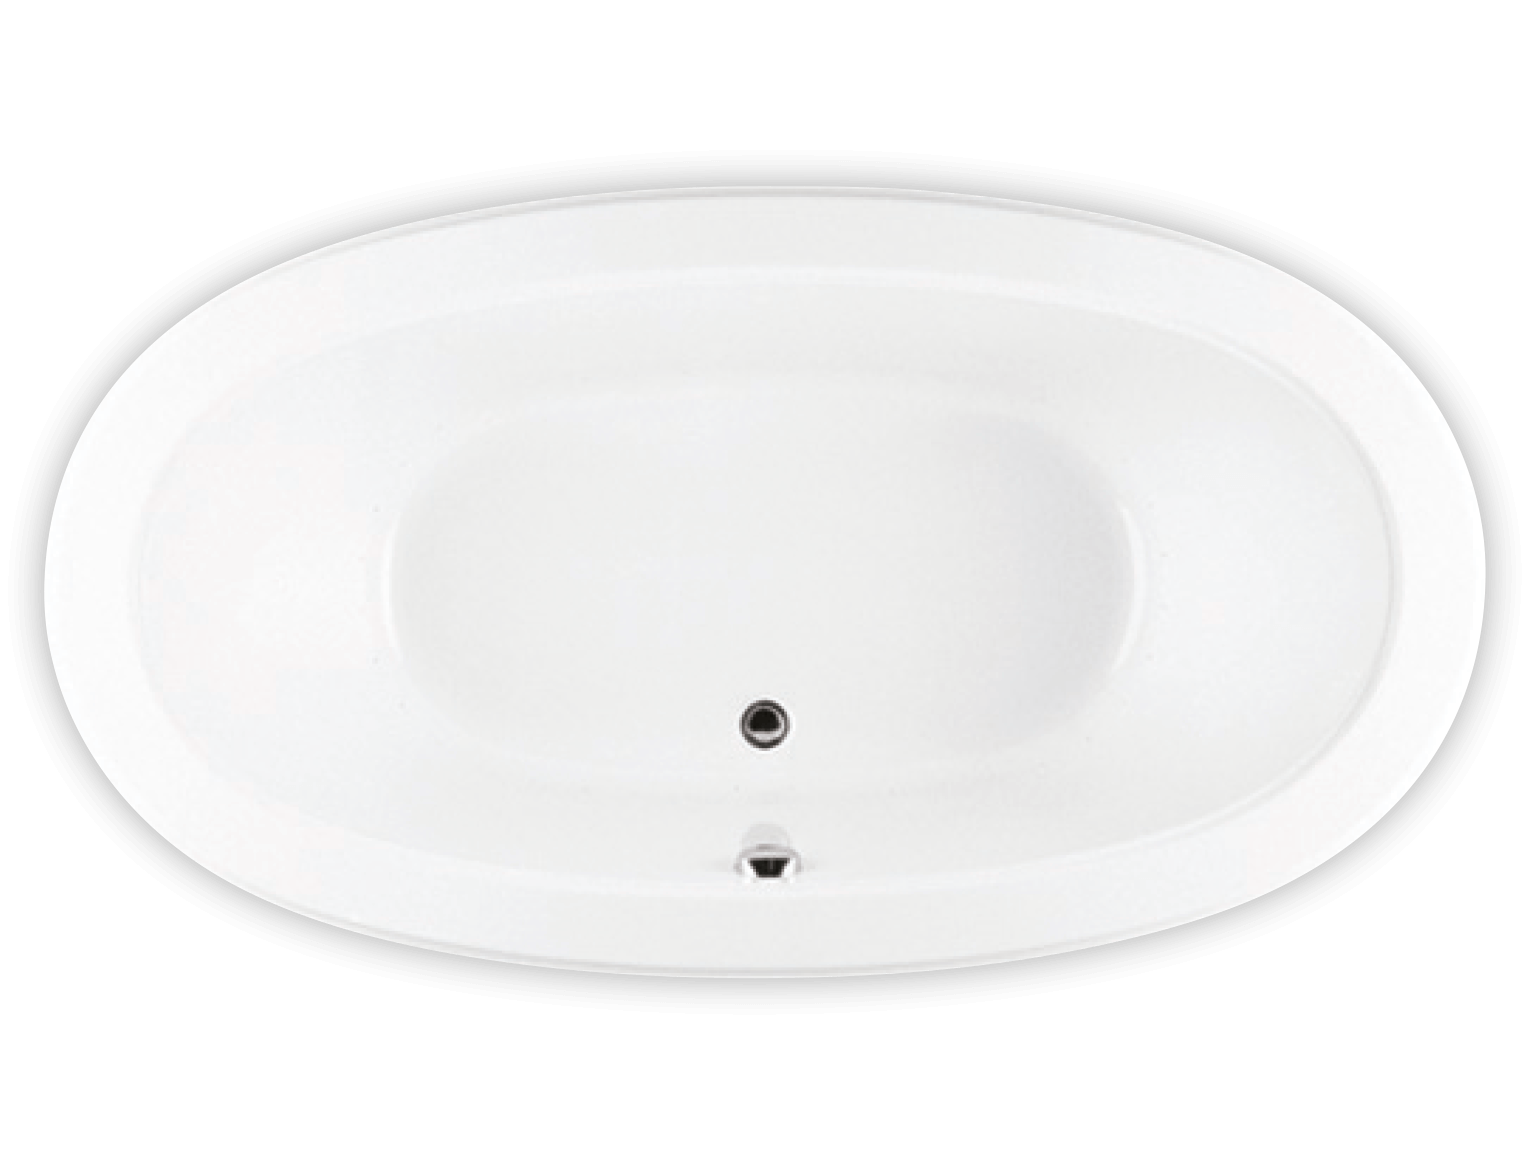 Bainultra Cella 7240 two person large clawfoot air jet bathtub for your modern bathroom